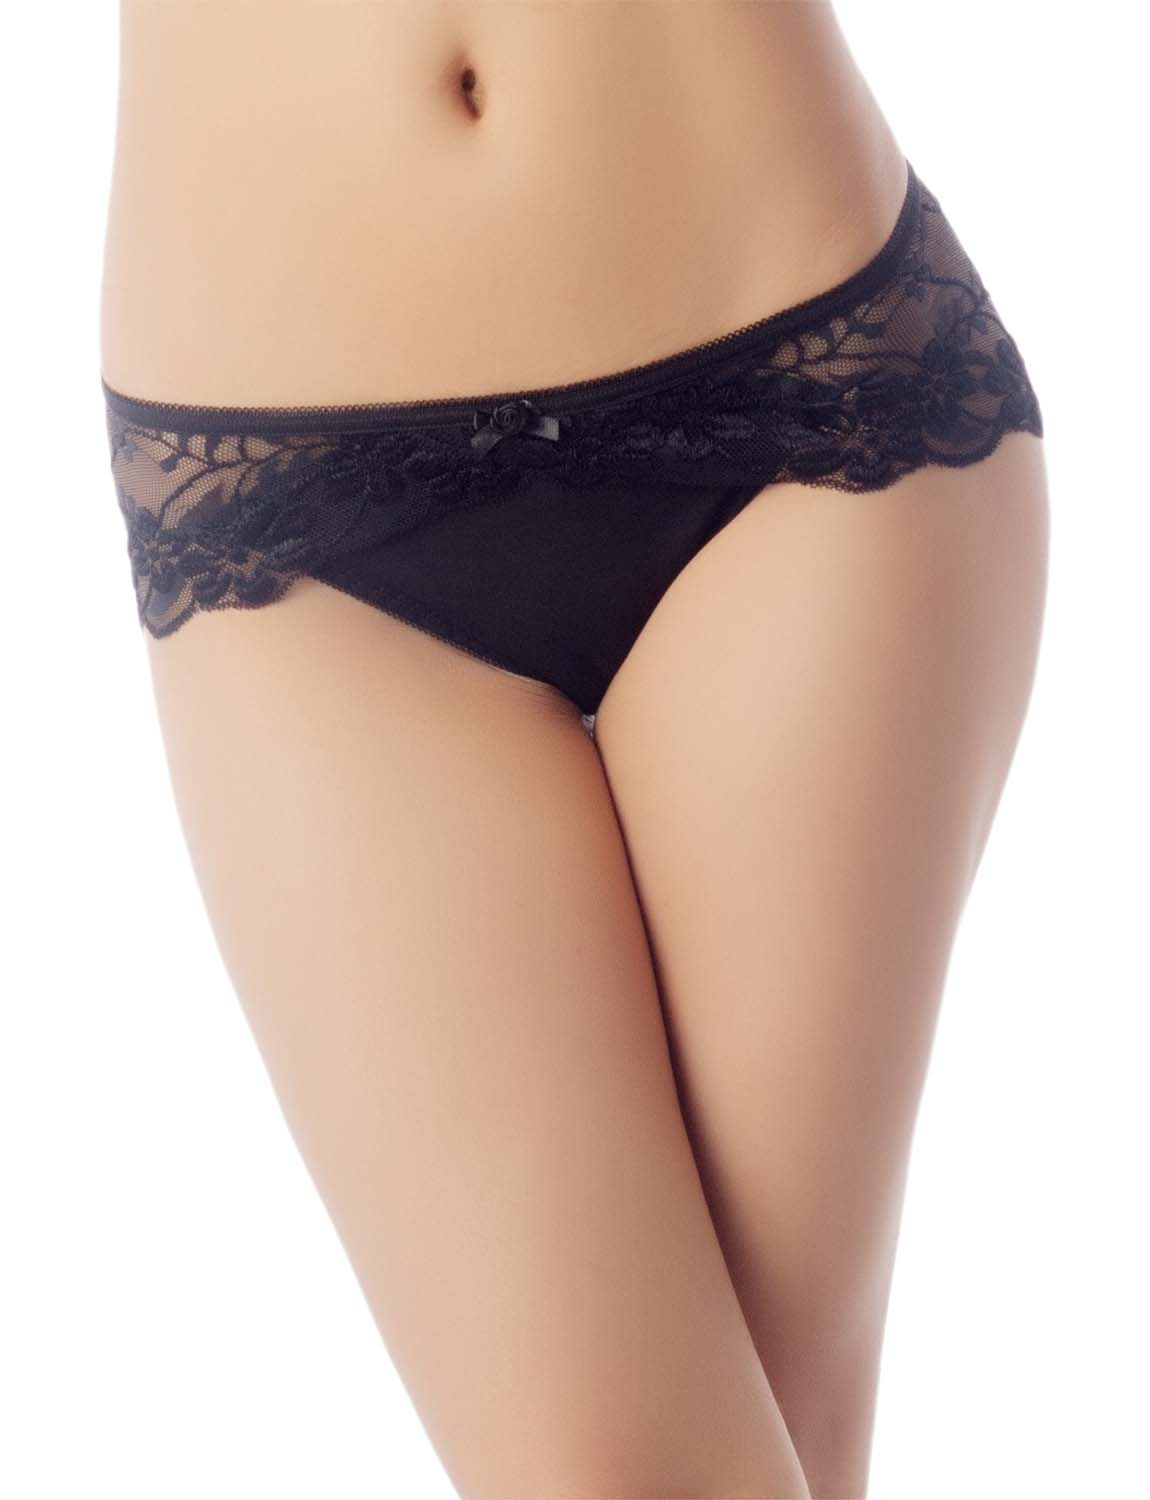 Women's Keyhole Lace Mesh See-Through Floral Winged Low Rise Hipster Panty, Size: L, Black